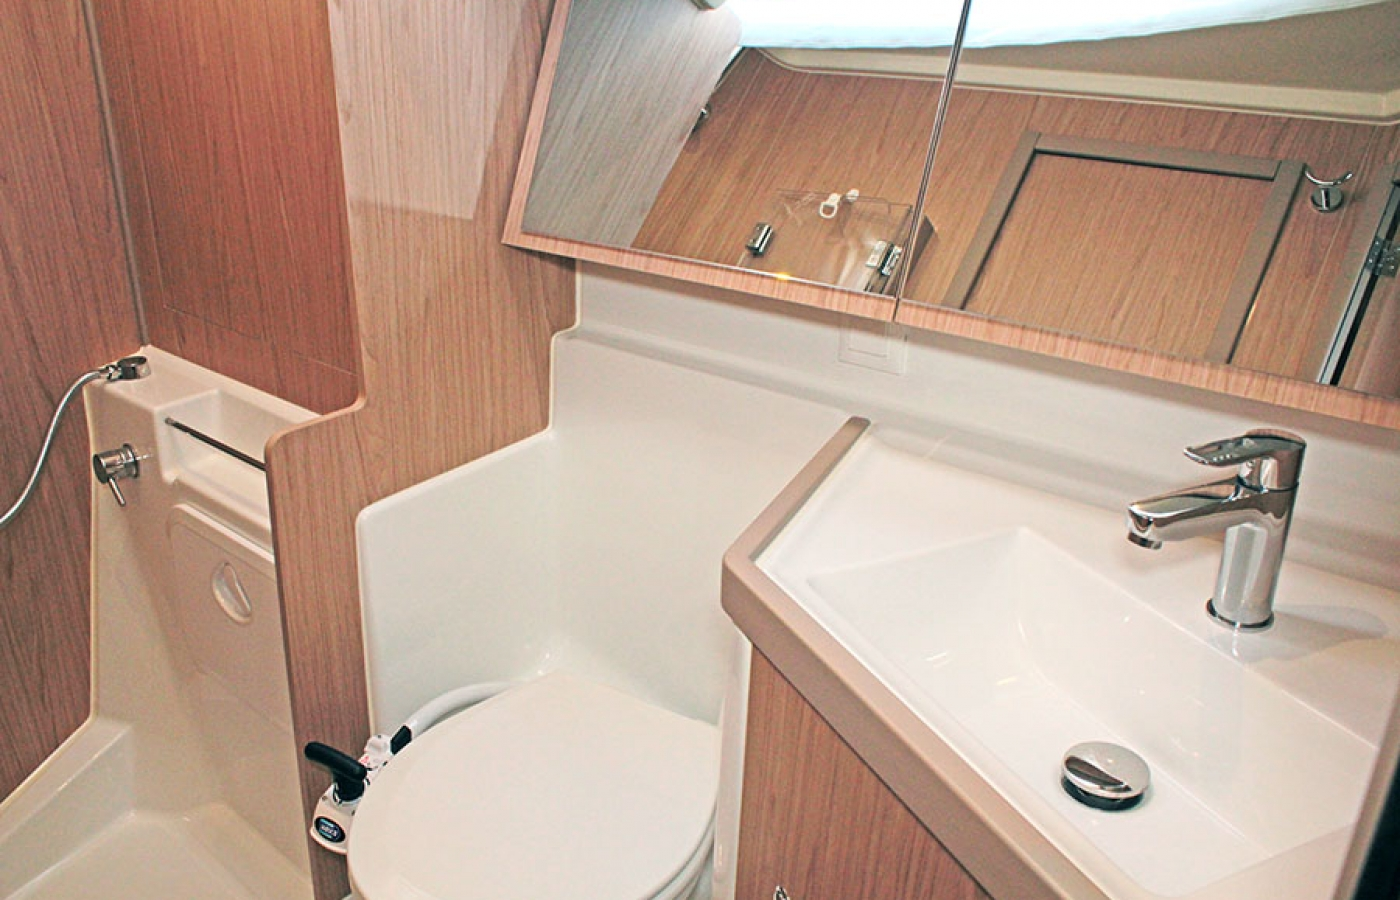 Toilet and sink with mirror cupboard